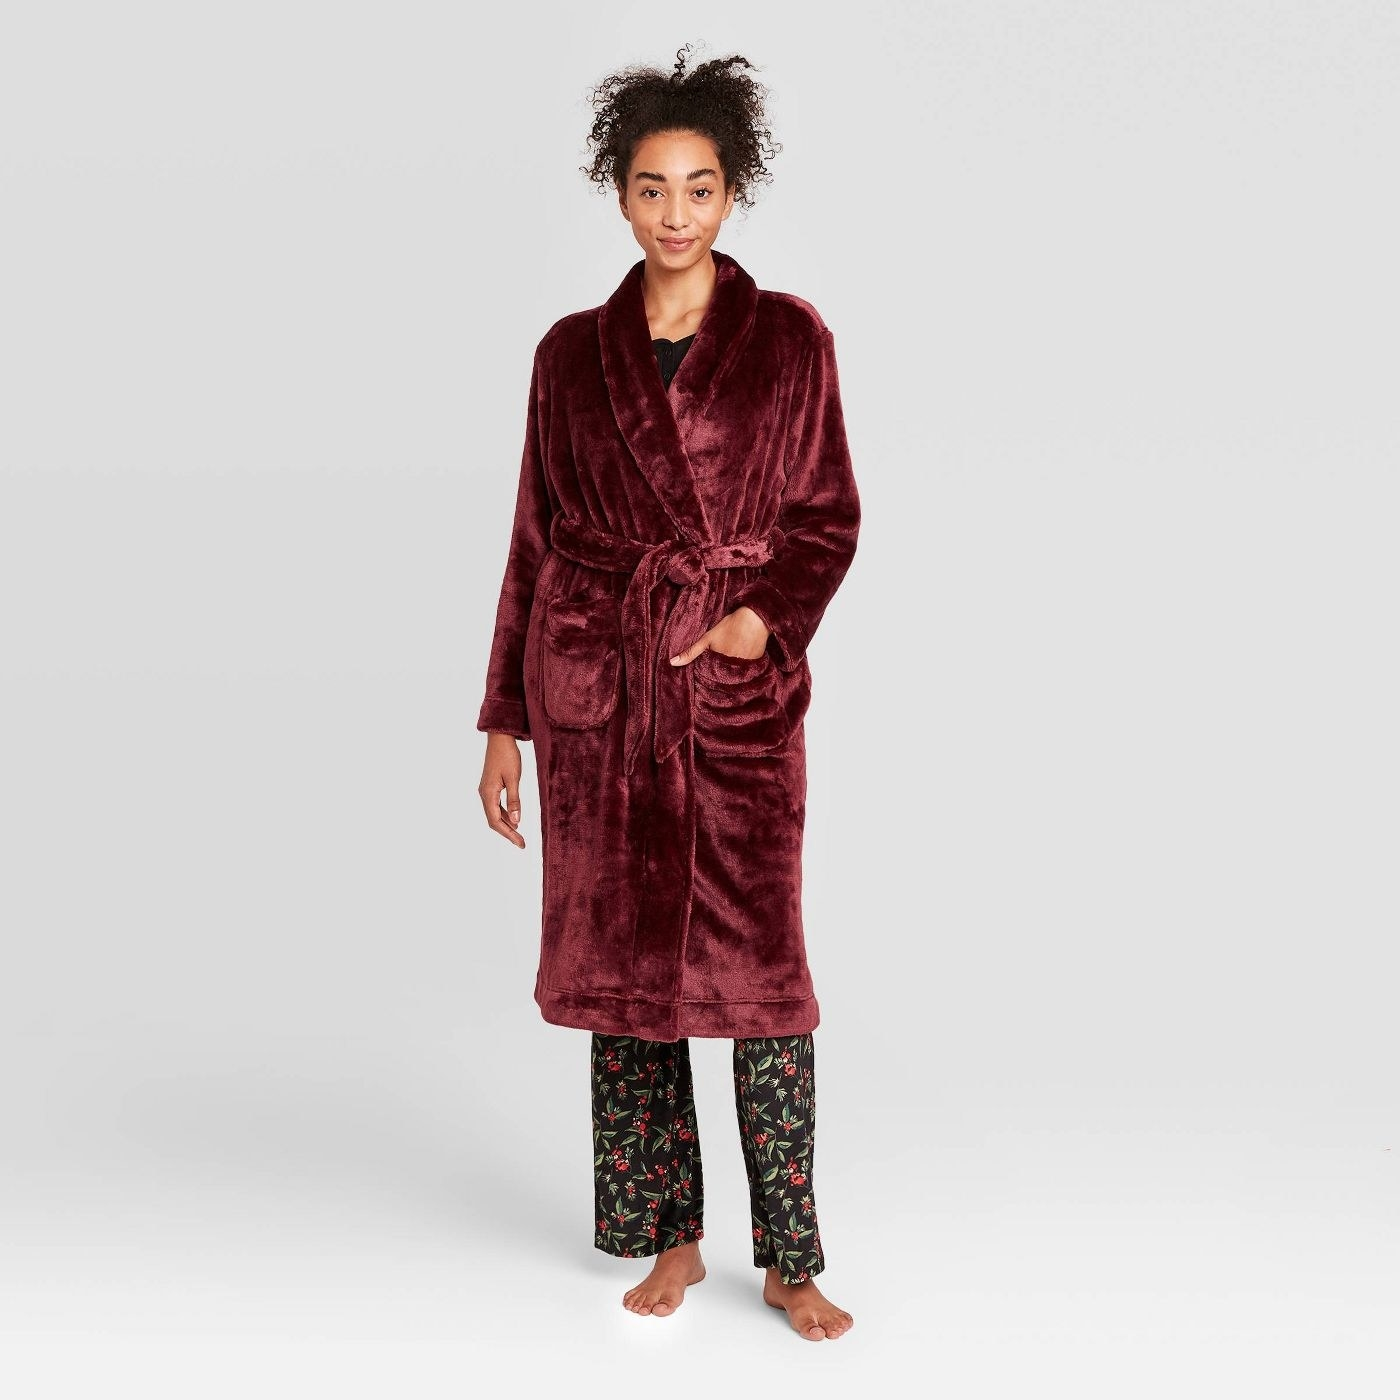 person wearing a burgundy plush robe over pajama pants